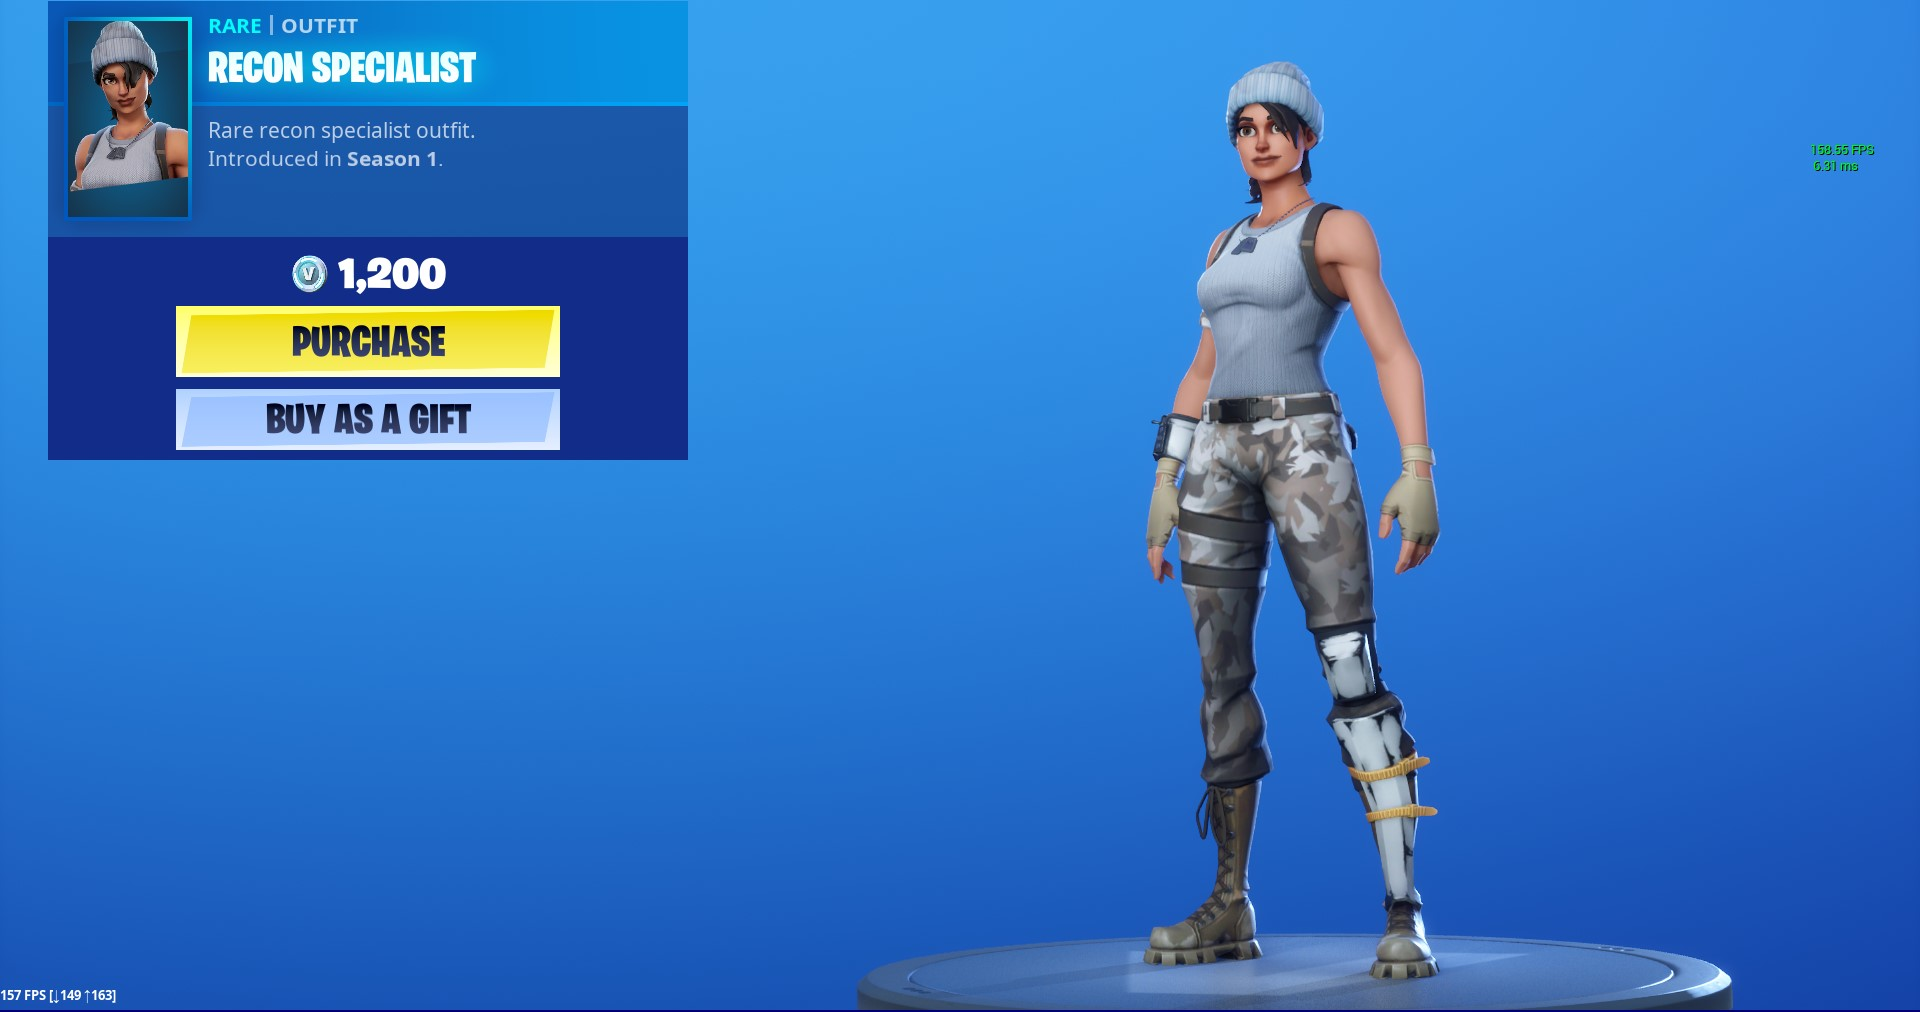 Rare Recon Specialist Outfit